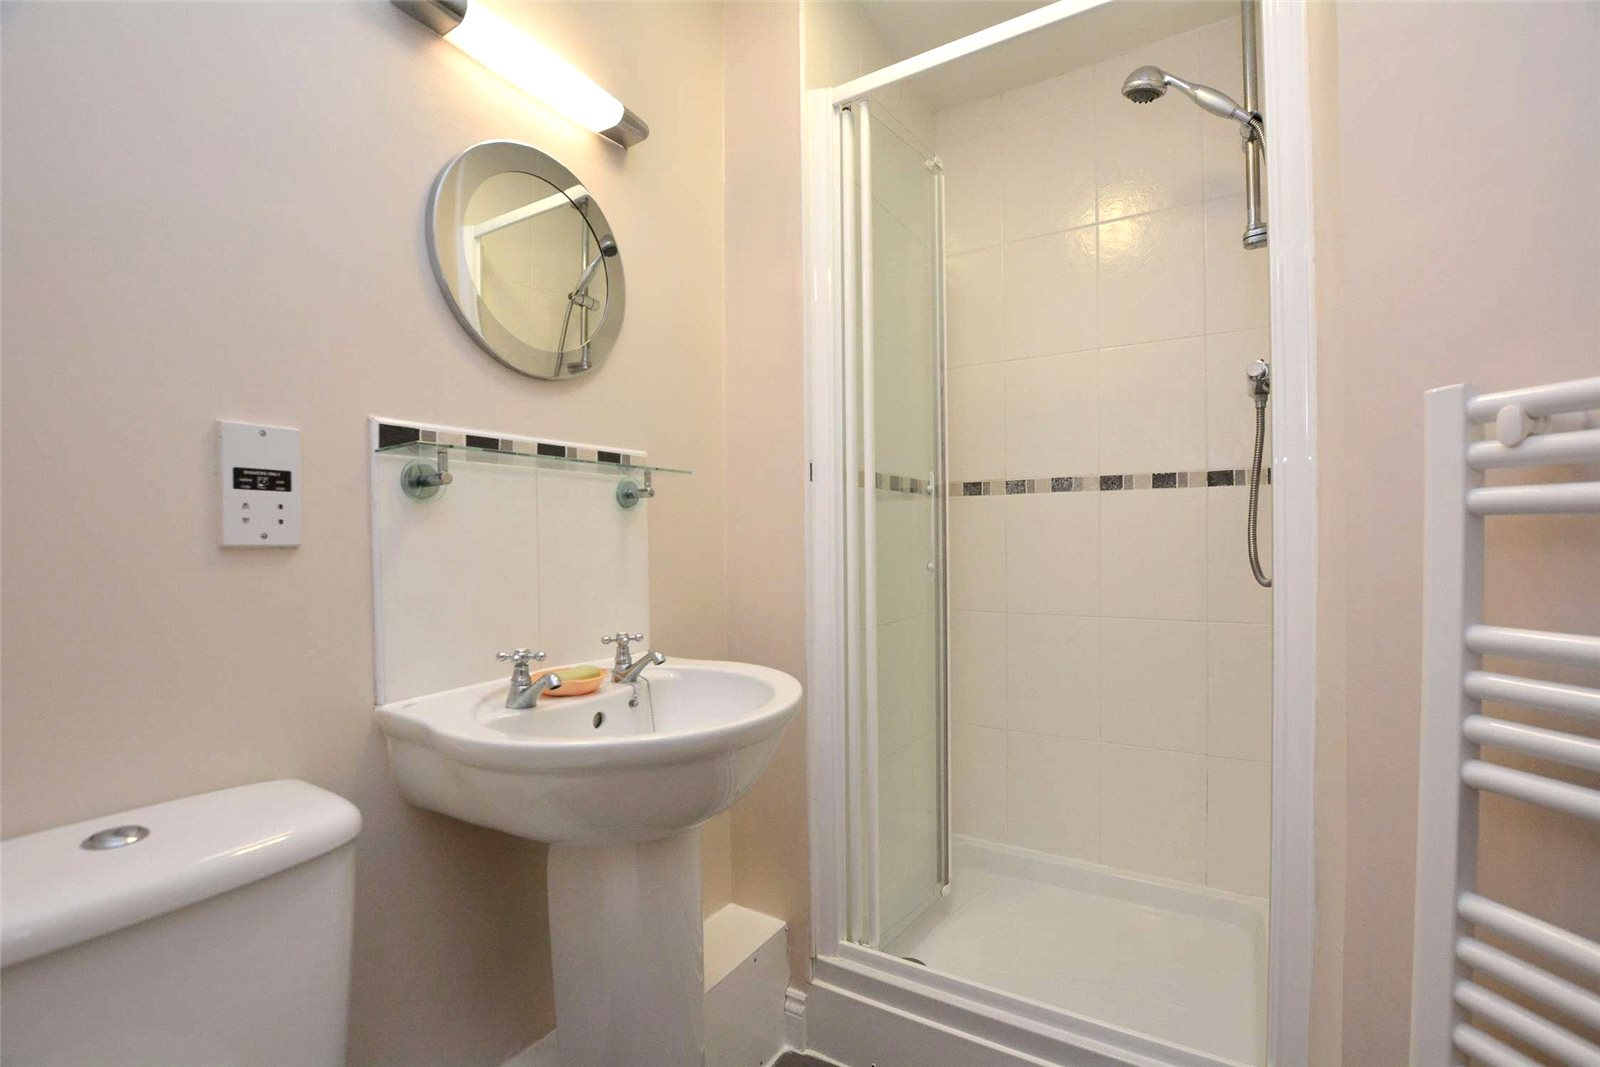 Property for sale in Pudsey, bathroom